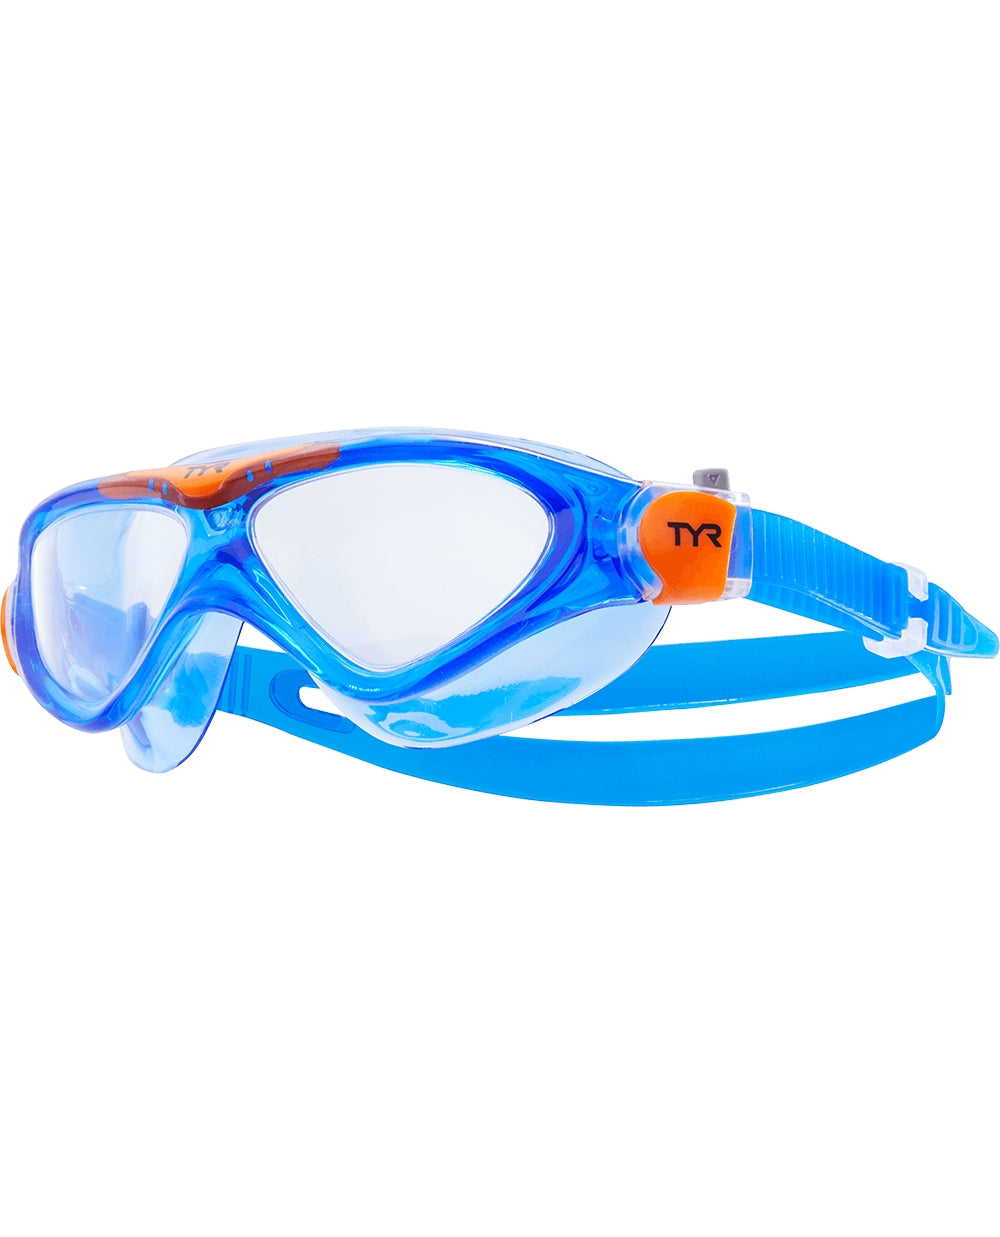 TYR Rouge Youth Swim Mask